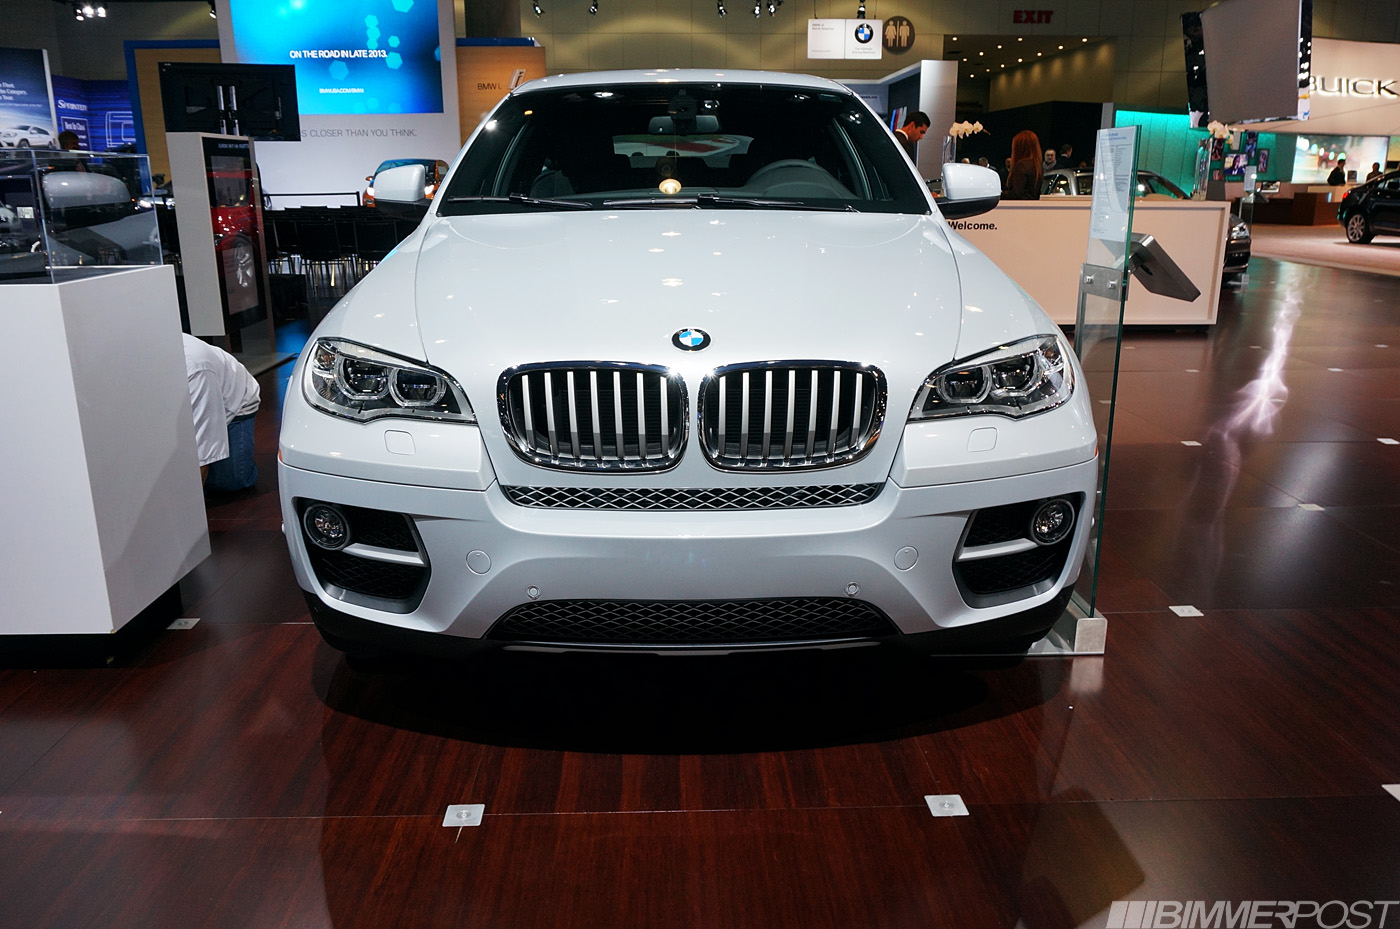 la 2012 bmw individual x6 performance edition xdrive50i limited to 100. Black Bedroom Furniture Sets. Home Design Ideas